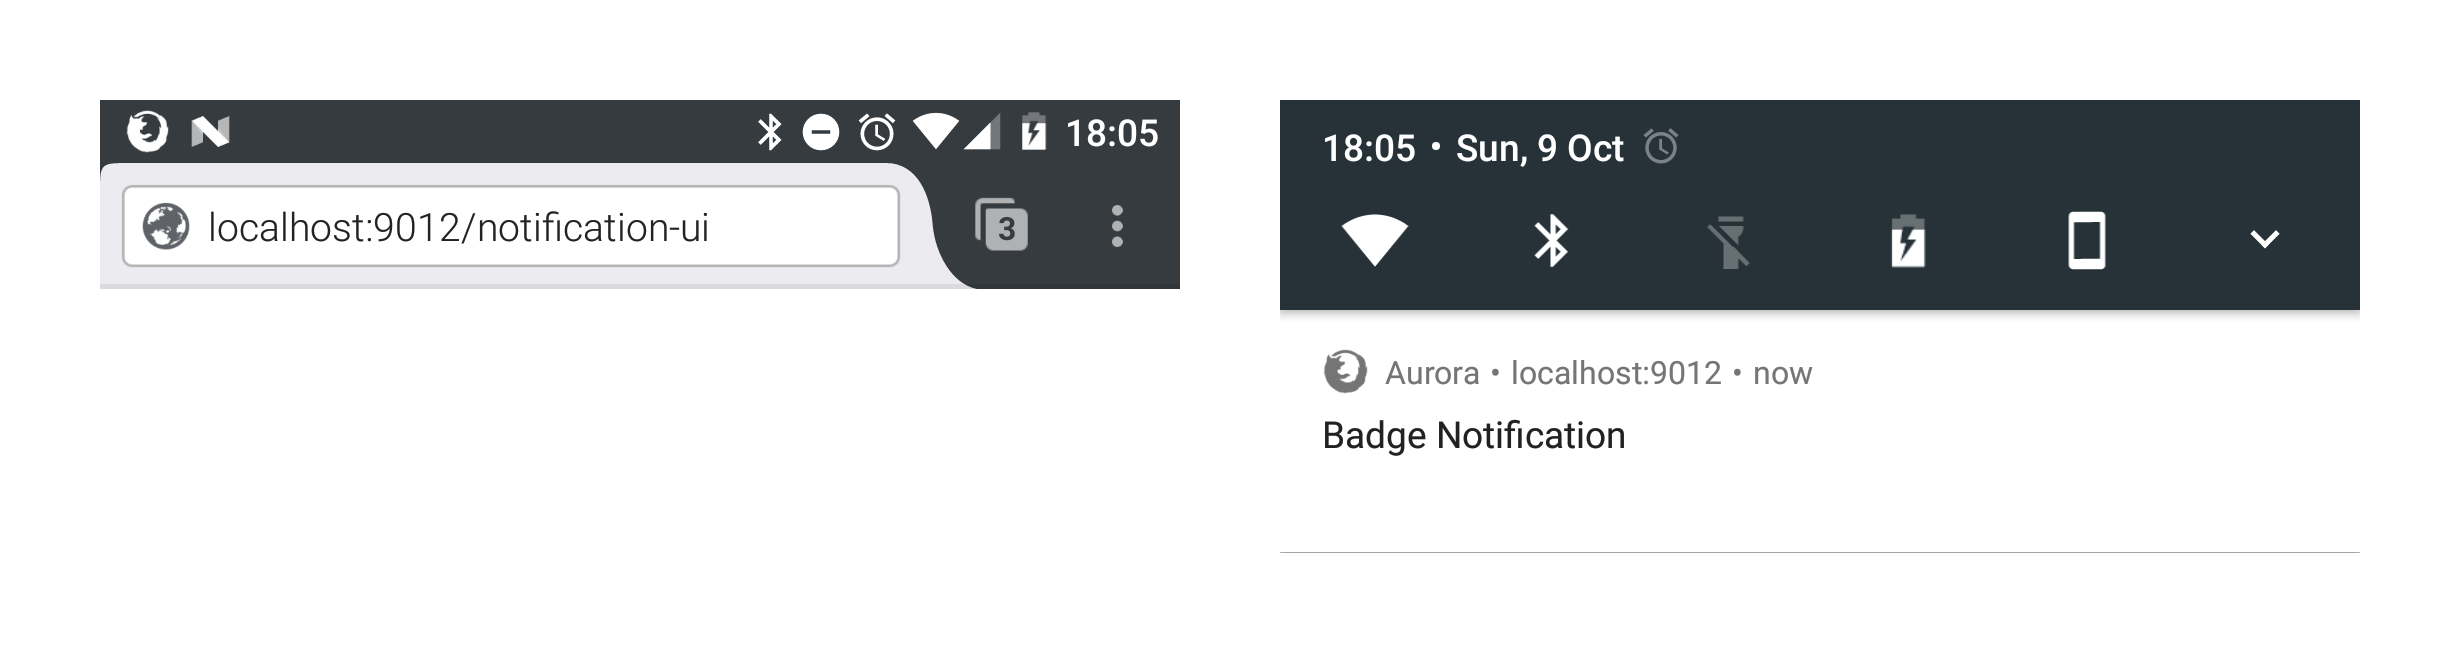 Notification with Badge on Firefox for Android.